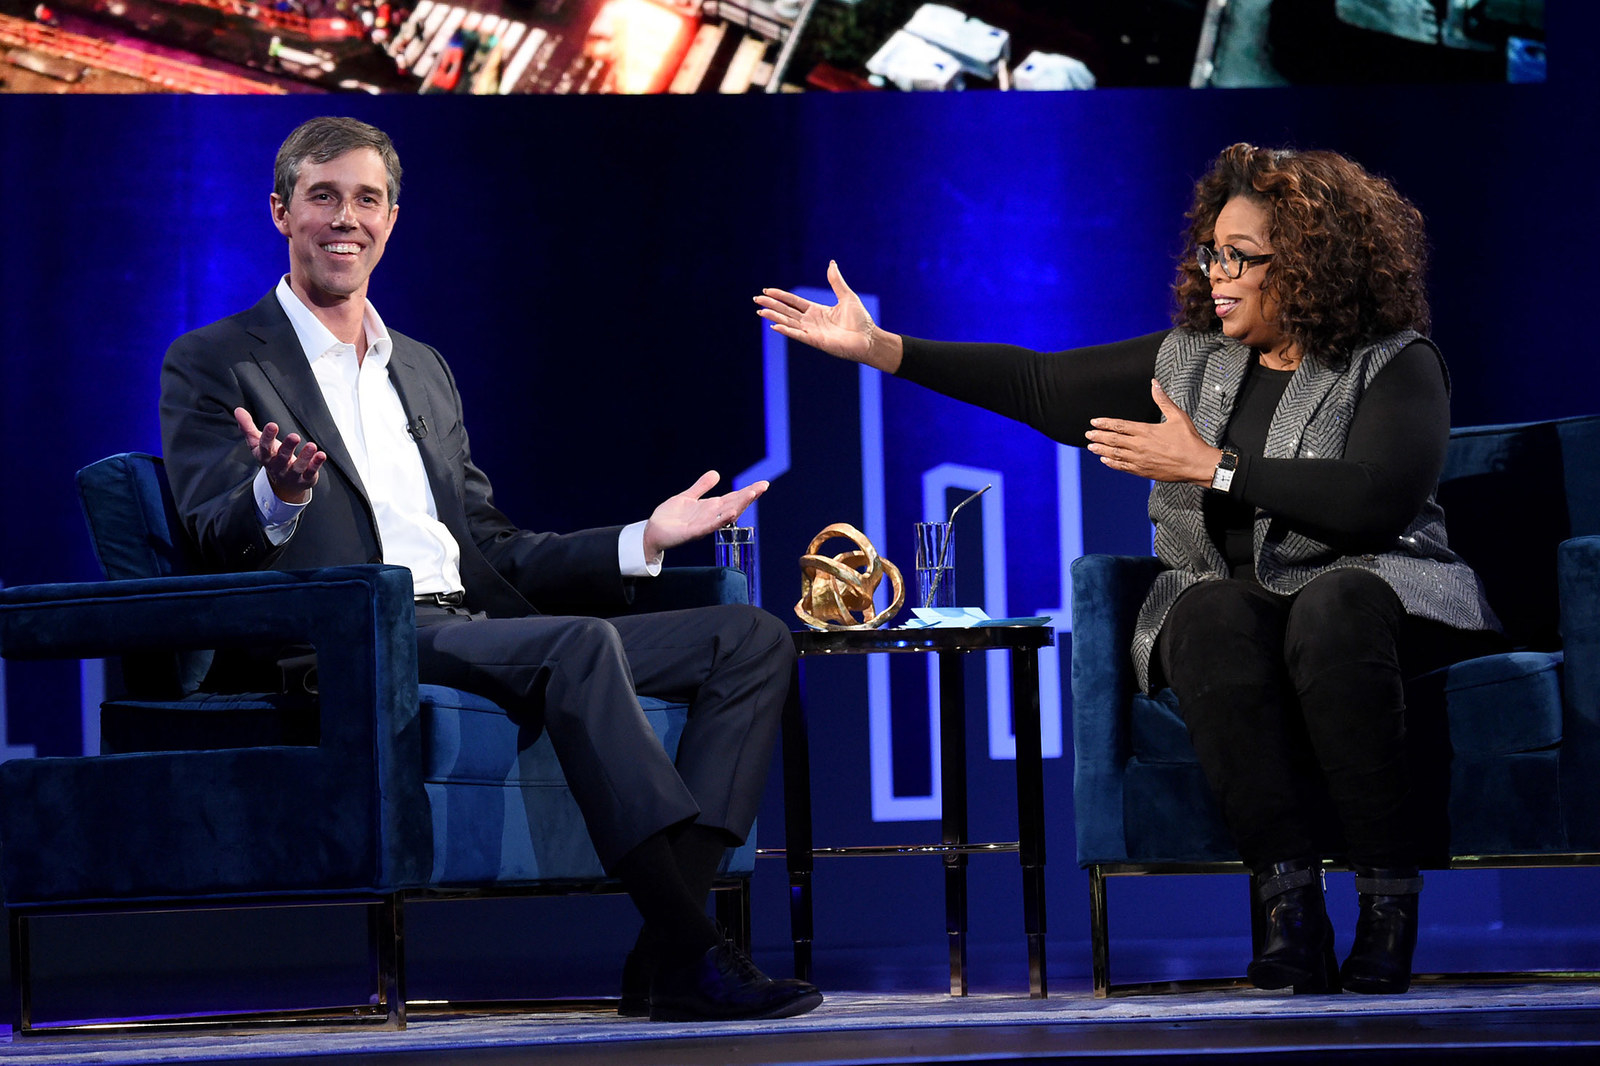 Beto O'Rourke and Oprah Winfrey speak onstage at Oprah's SuperSoul Conversations on Feb. 5, in New York City.